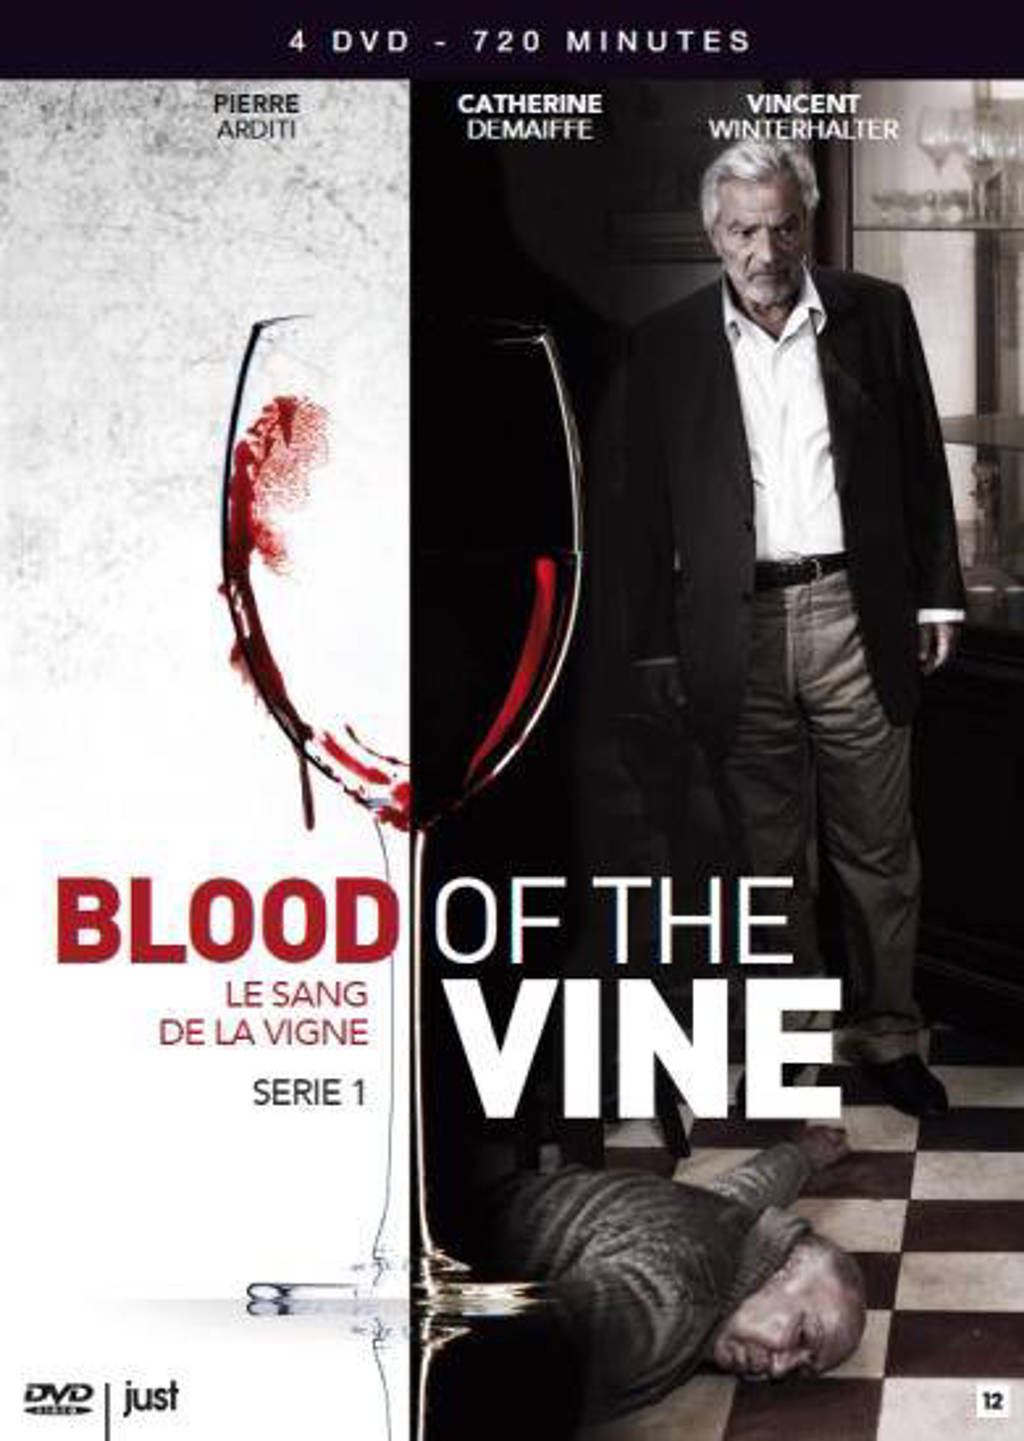 Blood of the vine - Seizoen 1 (DVD)